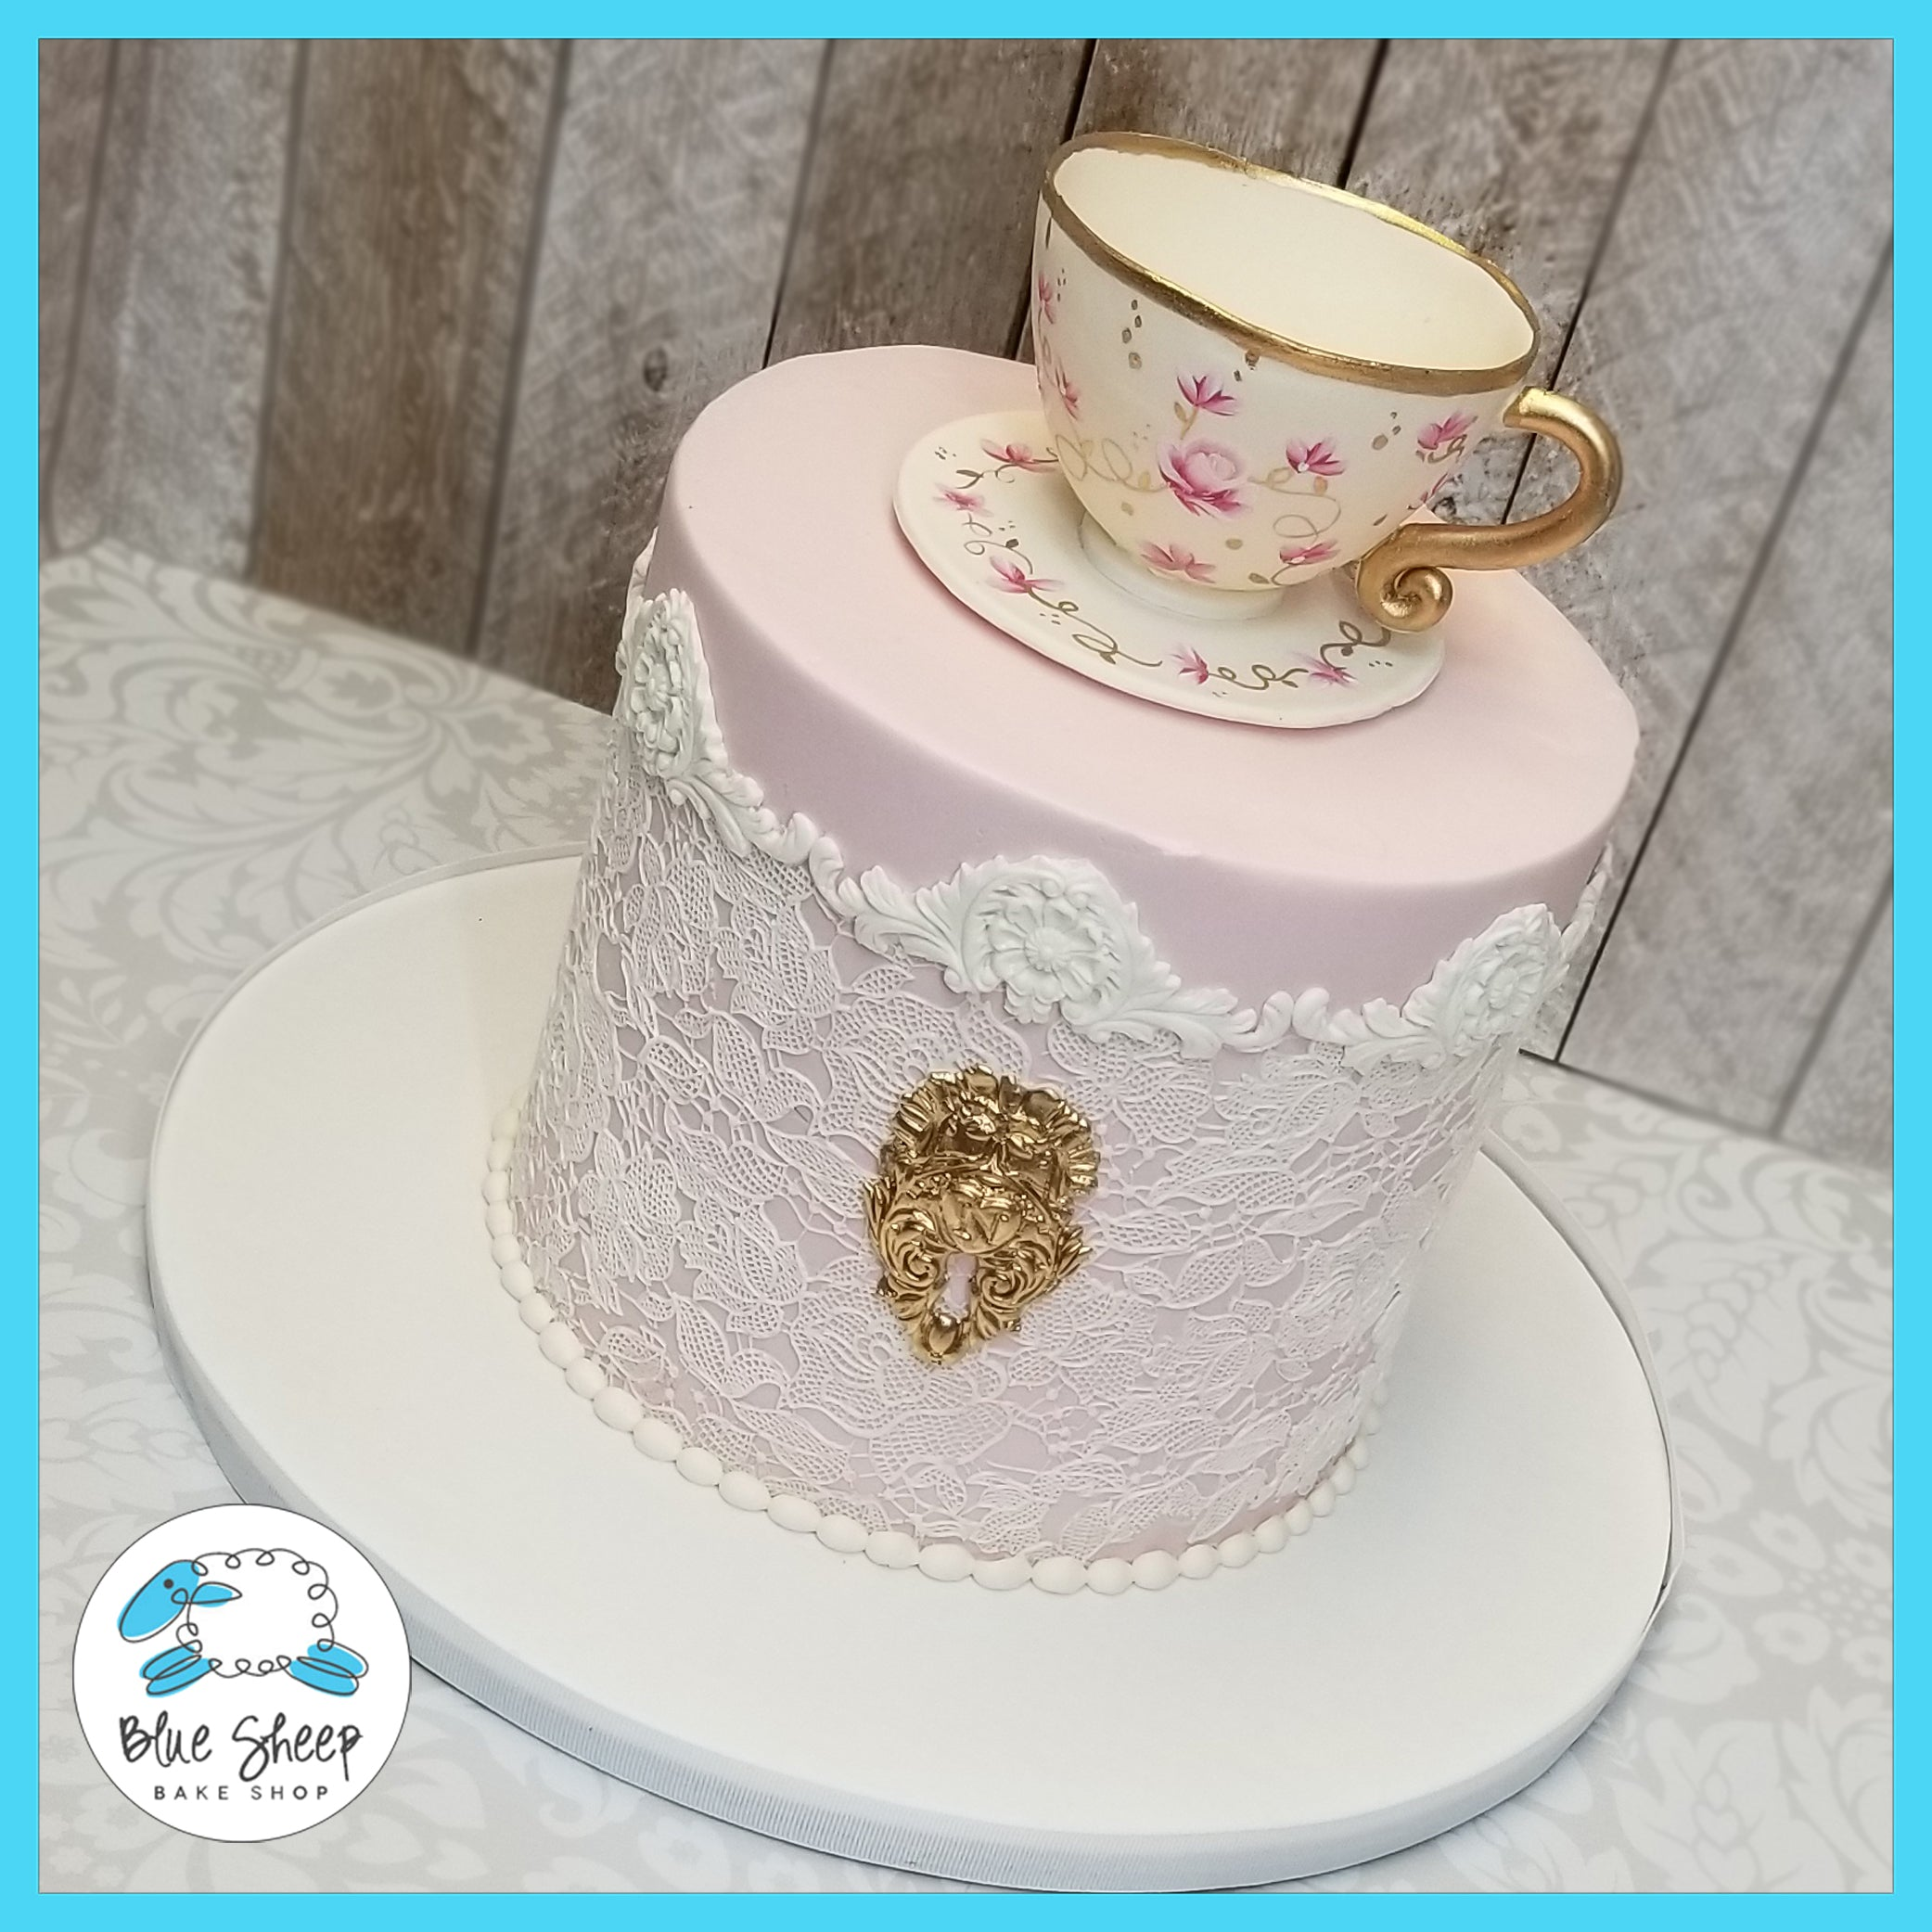 Tea Party Bridal Shower Cake with Fondant Tea Cup | Blue Sheep Bake Shop